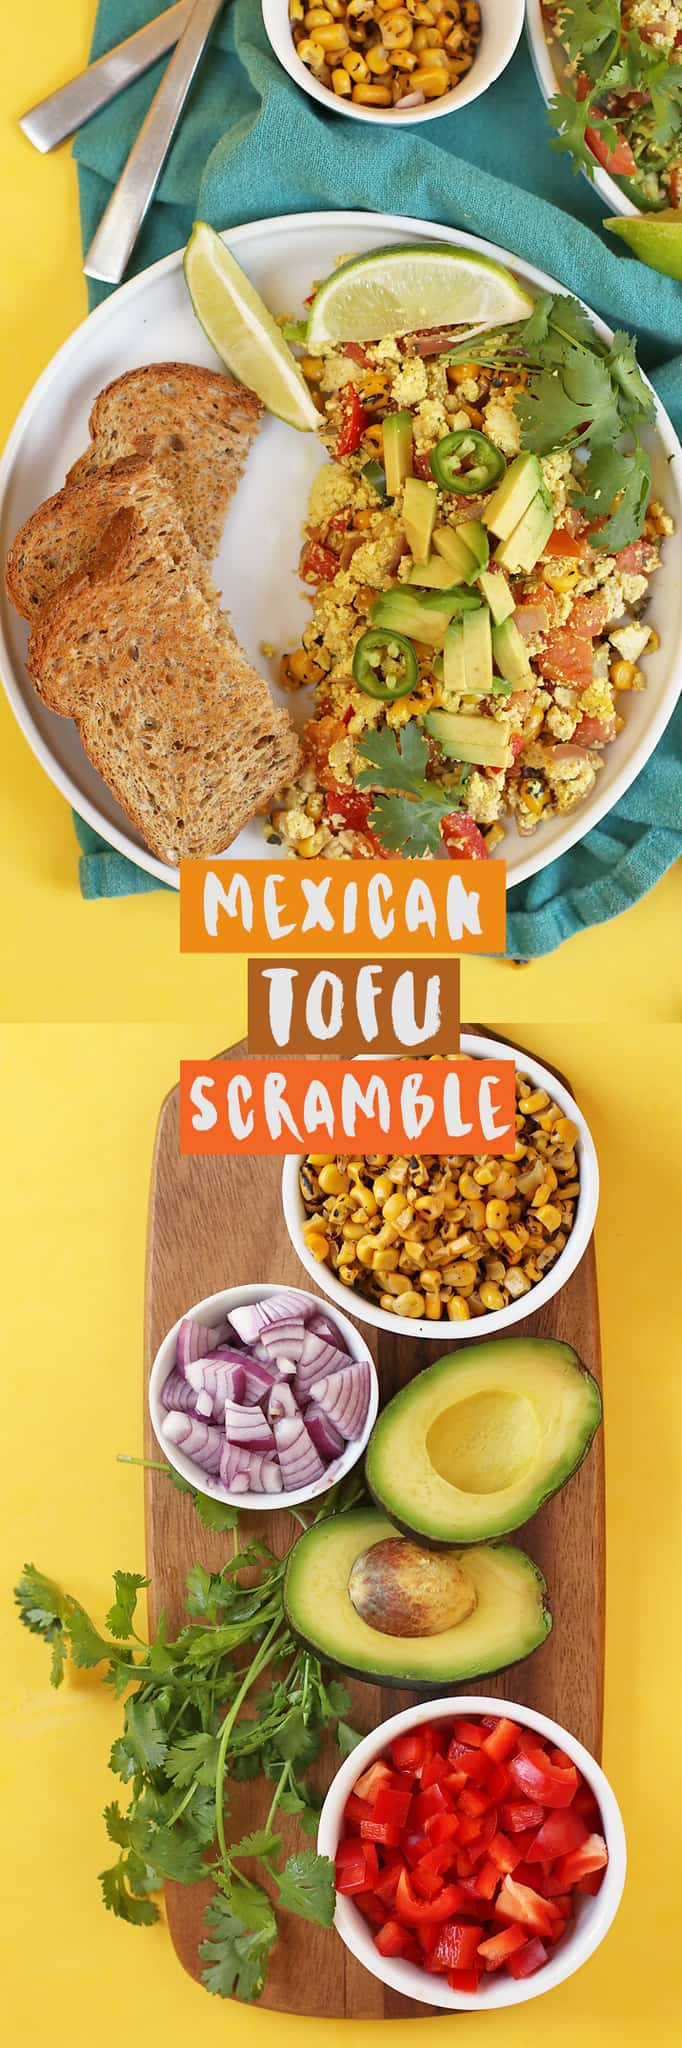 Start your morning off with this vegan and gluten-free Mexica Tofu Scrambled filled with fresh corn, pico de gallo, cilantro, and avocado. Ready in 20 minutes for a quick and satisfying meal.  #vegan #vegetarian #tofu #tofuscramble #eggfree #breakfast #veganbreakfast #veganrecipes #healthyrecipes #mydarlingvegan